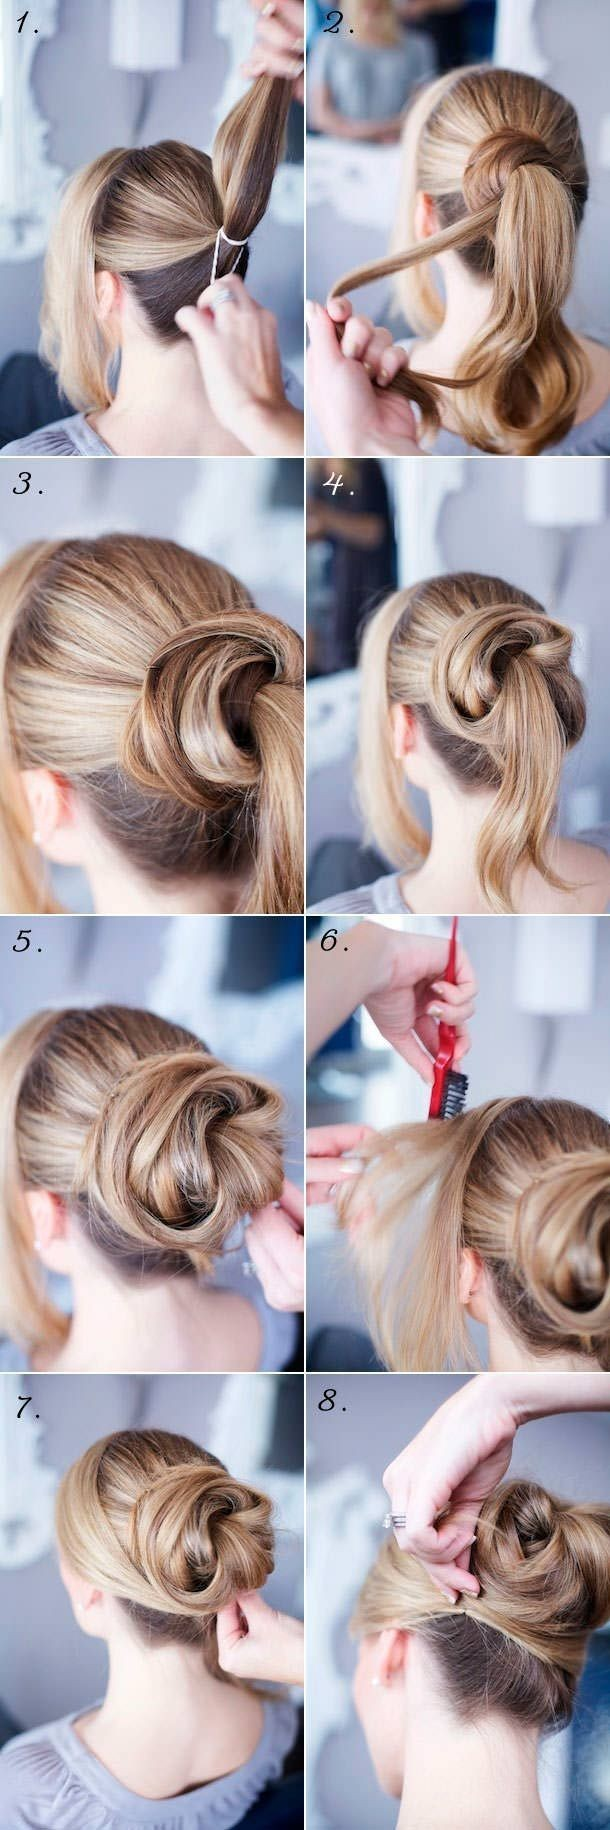 Winter-Hairstyles-to-Rock-this-Season-Cute-Updo-Tutorials-for-Long-Hair-2